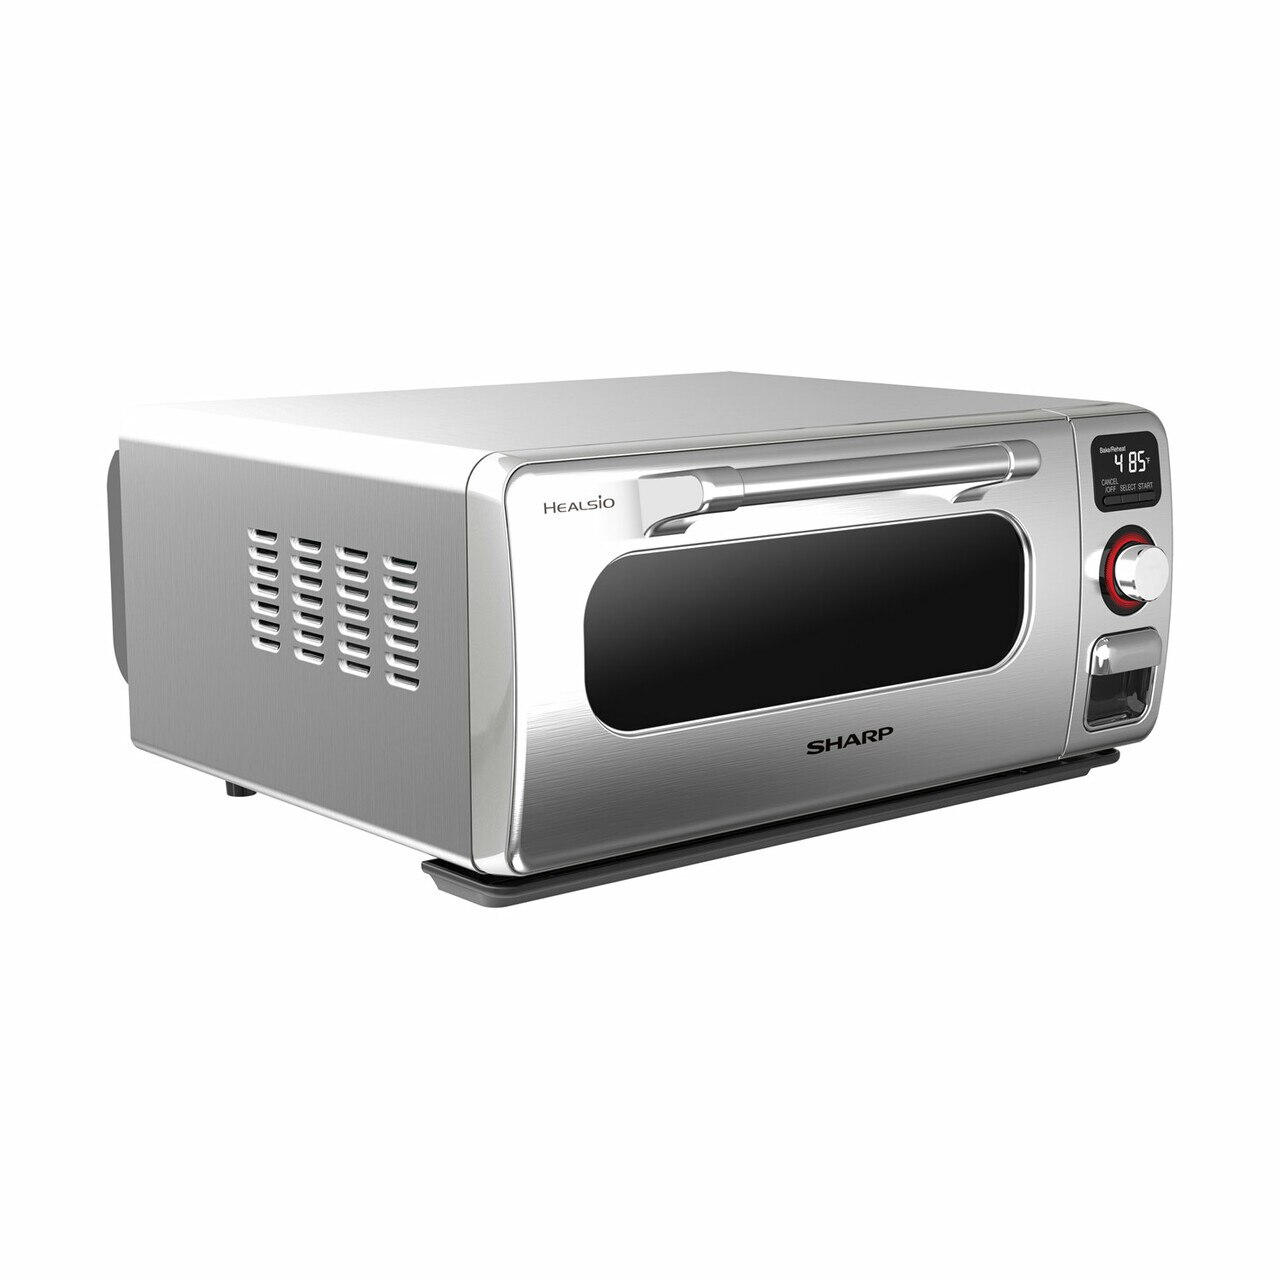 Sharp Superheated Steam Countertop Oven (SSC0586DS) – right angle view